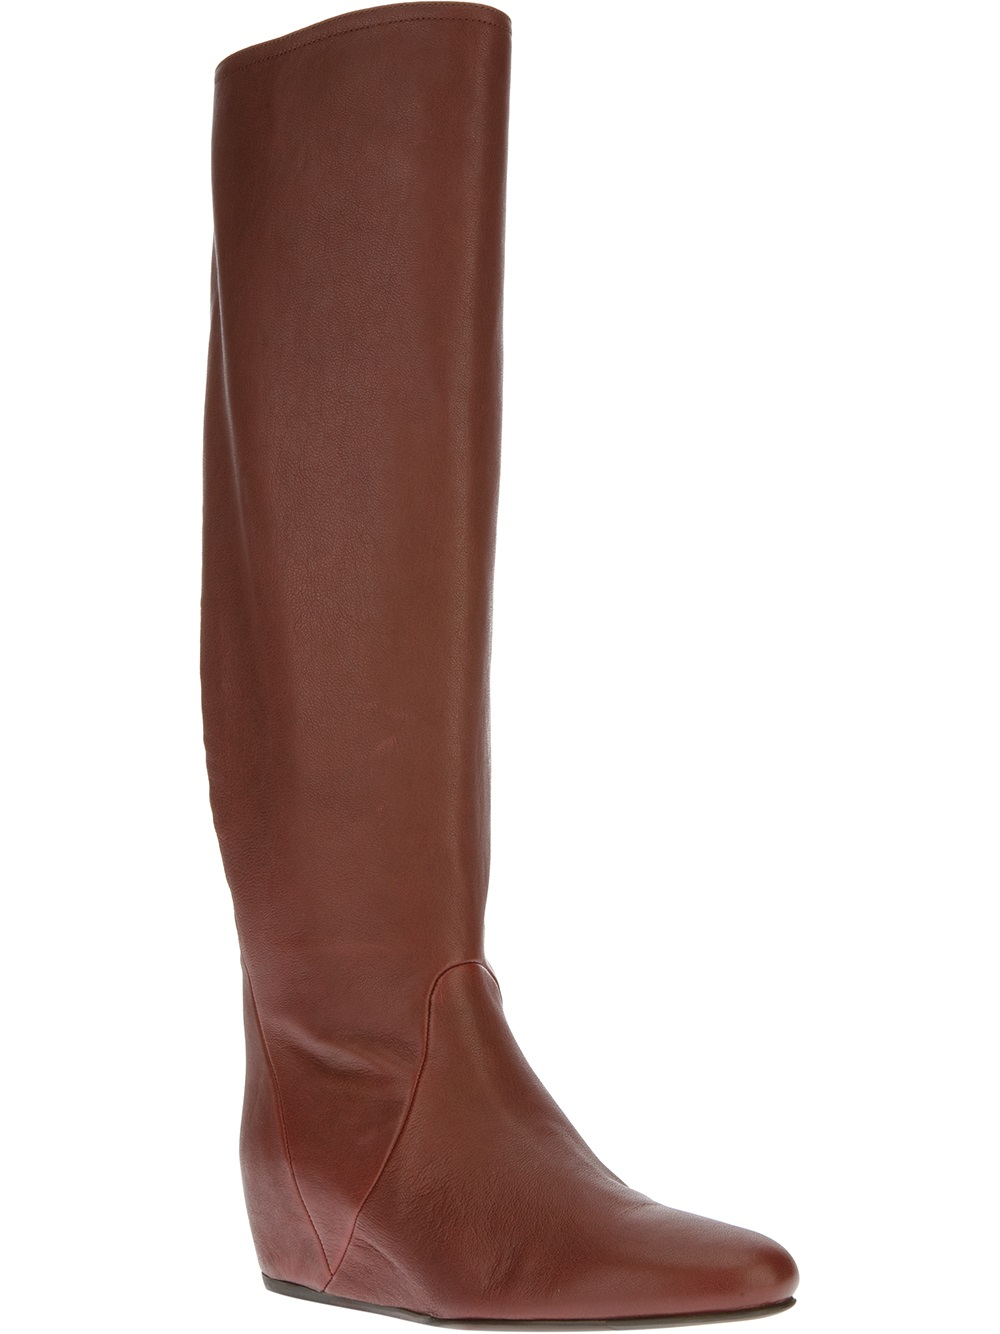 lanvin concealed wedge knee high boot in brown lyst